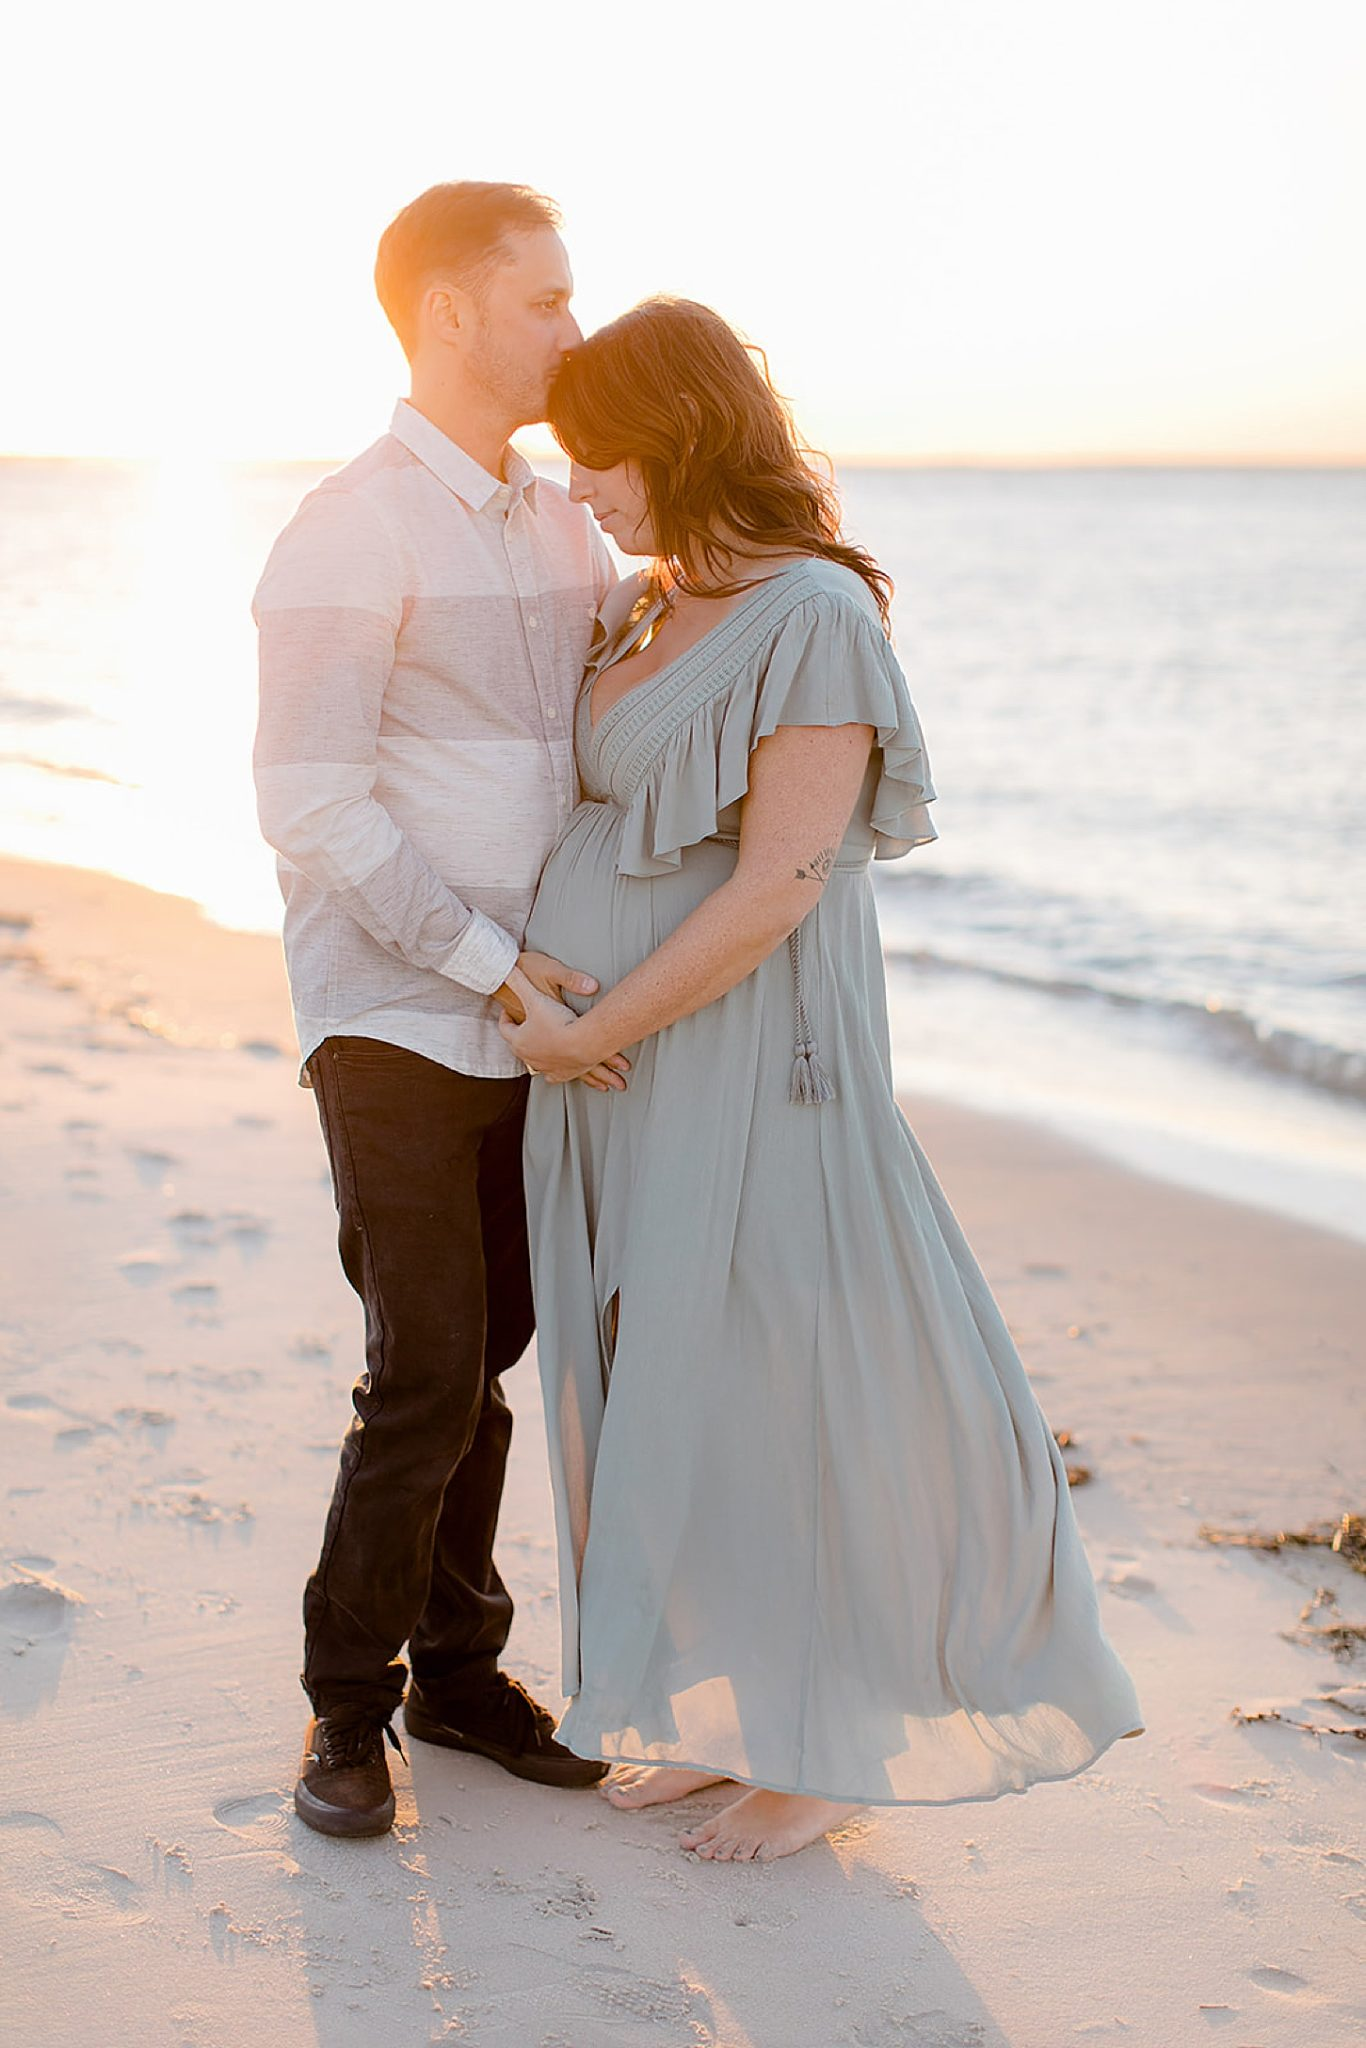 Ocean City NJ Maternity Portrait Photography by Magdalena Studios 0010 scaled